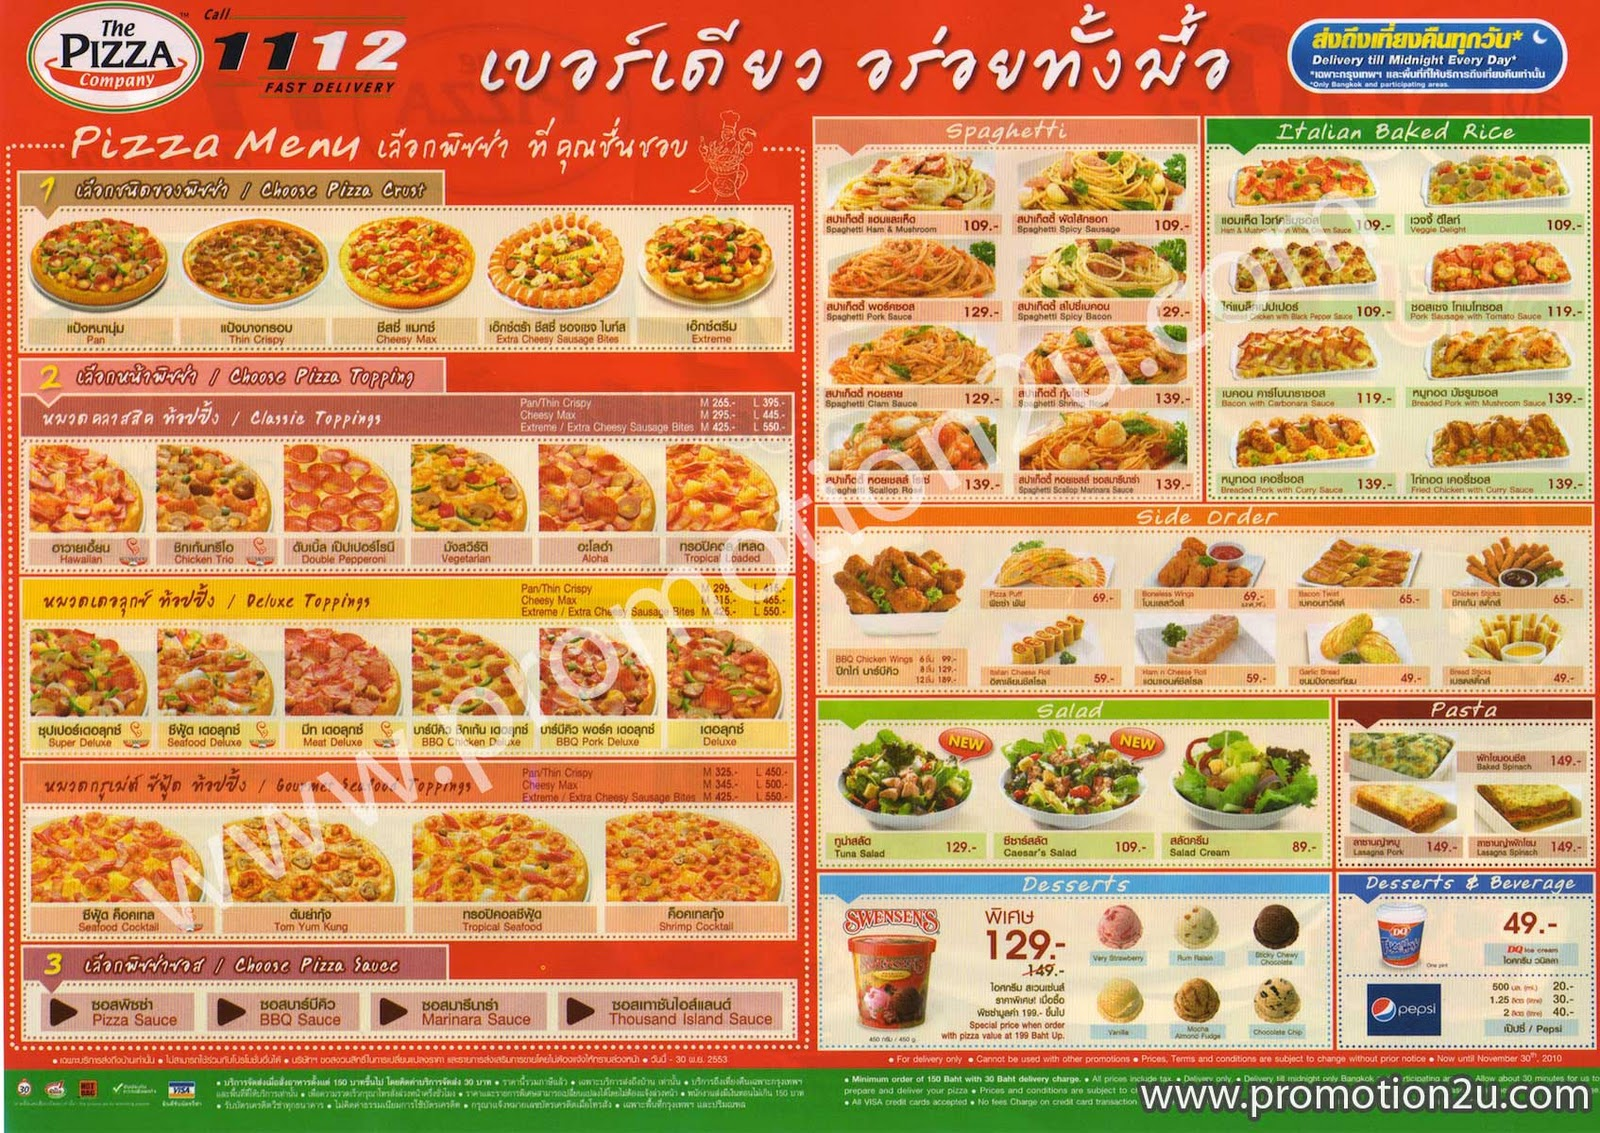 You know, Thai pizza actually sounds pretty good.